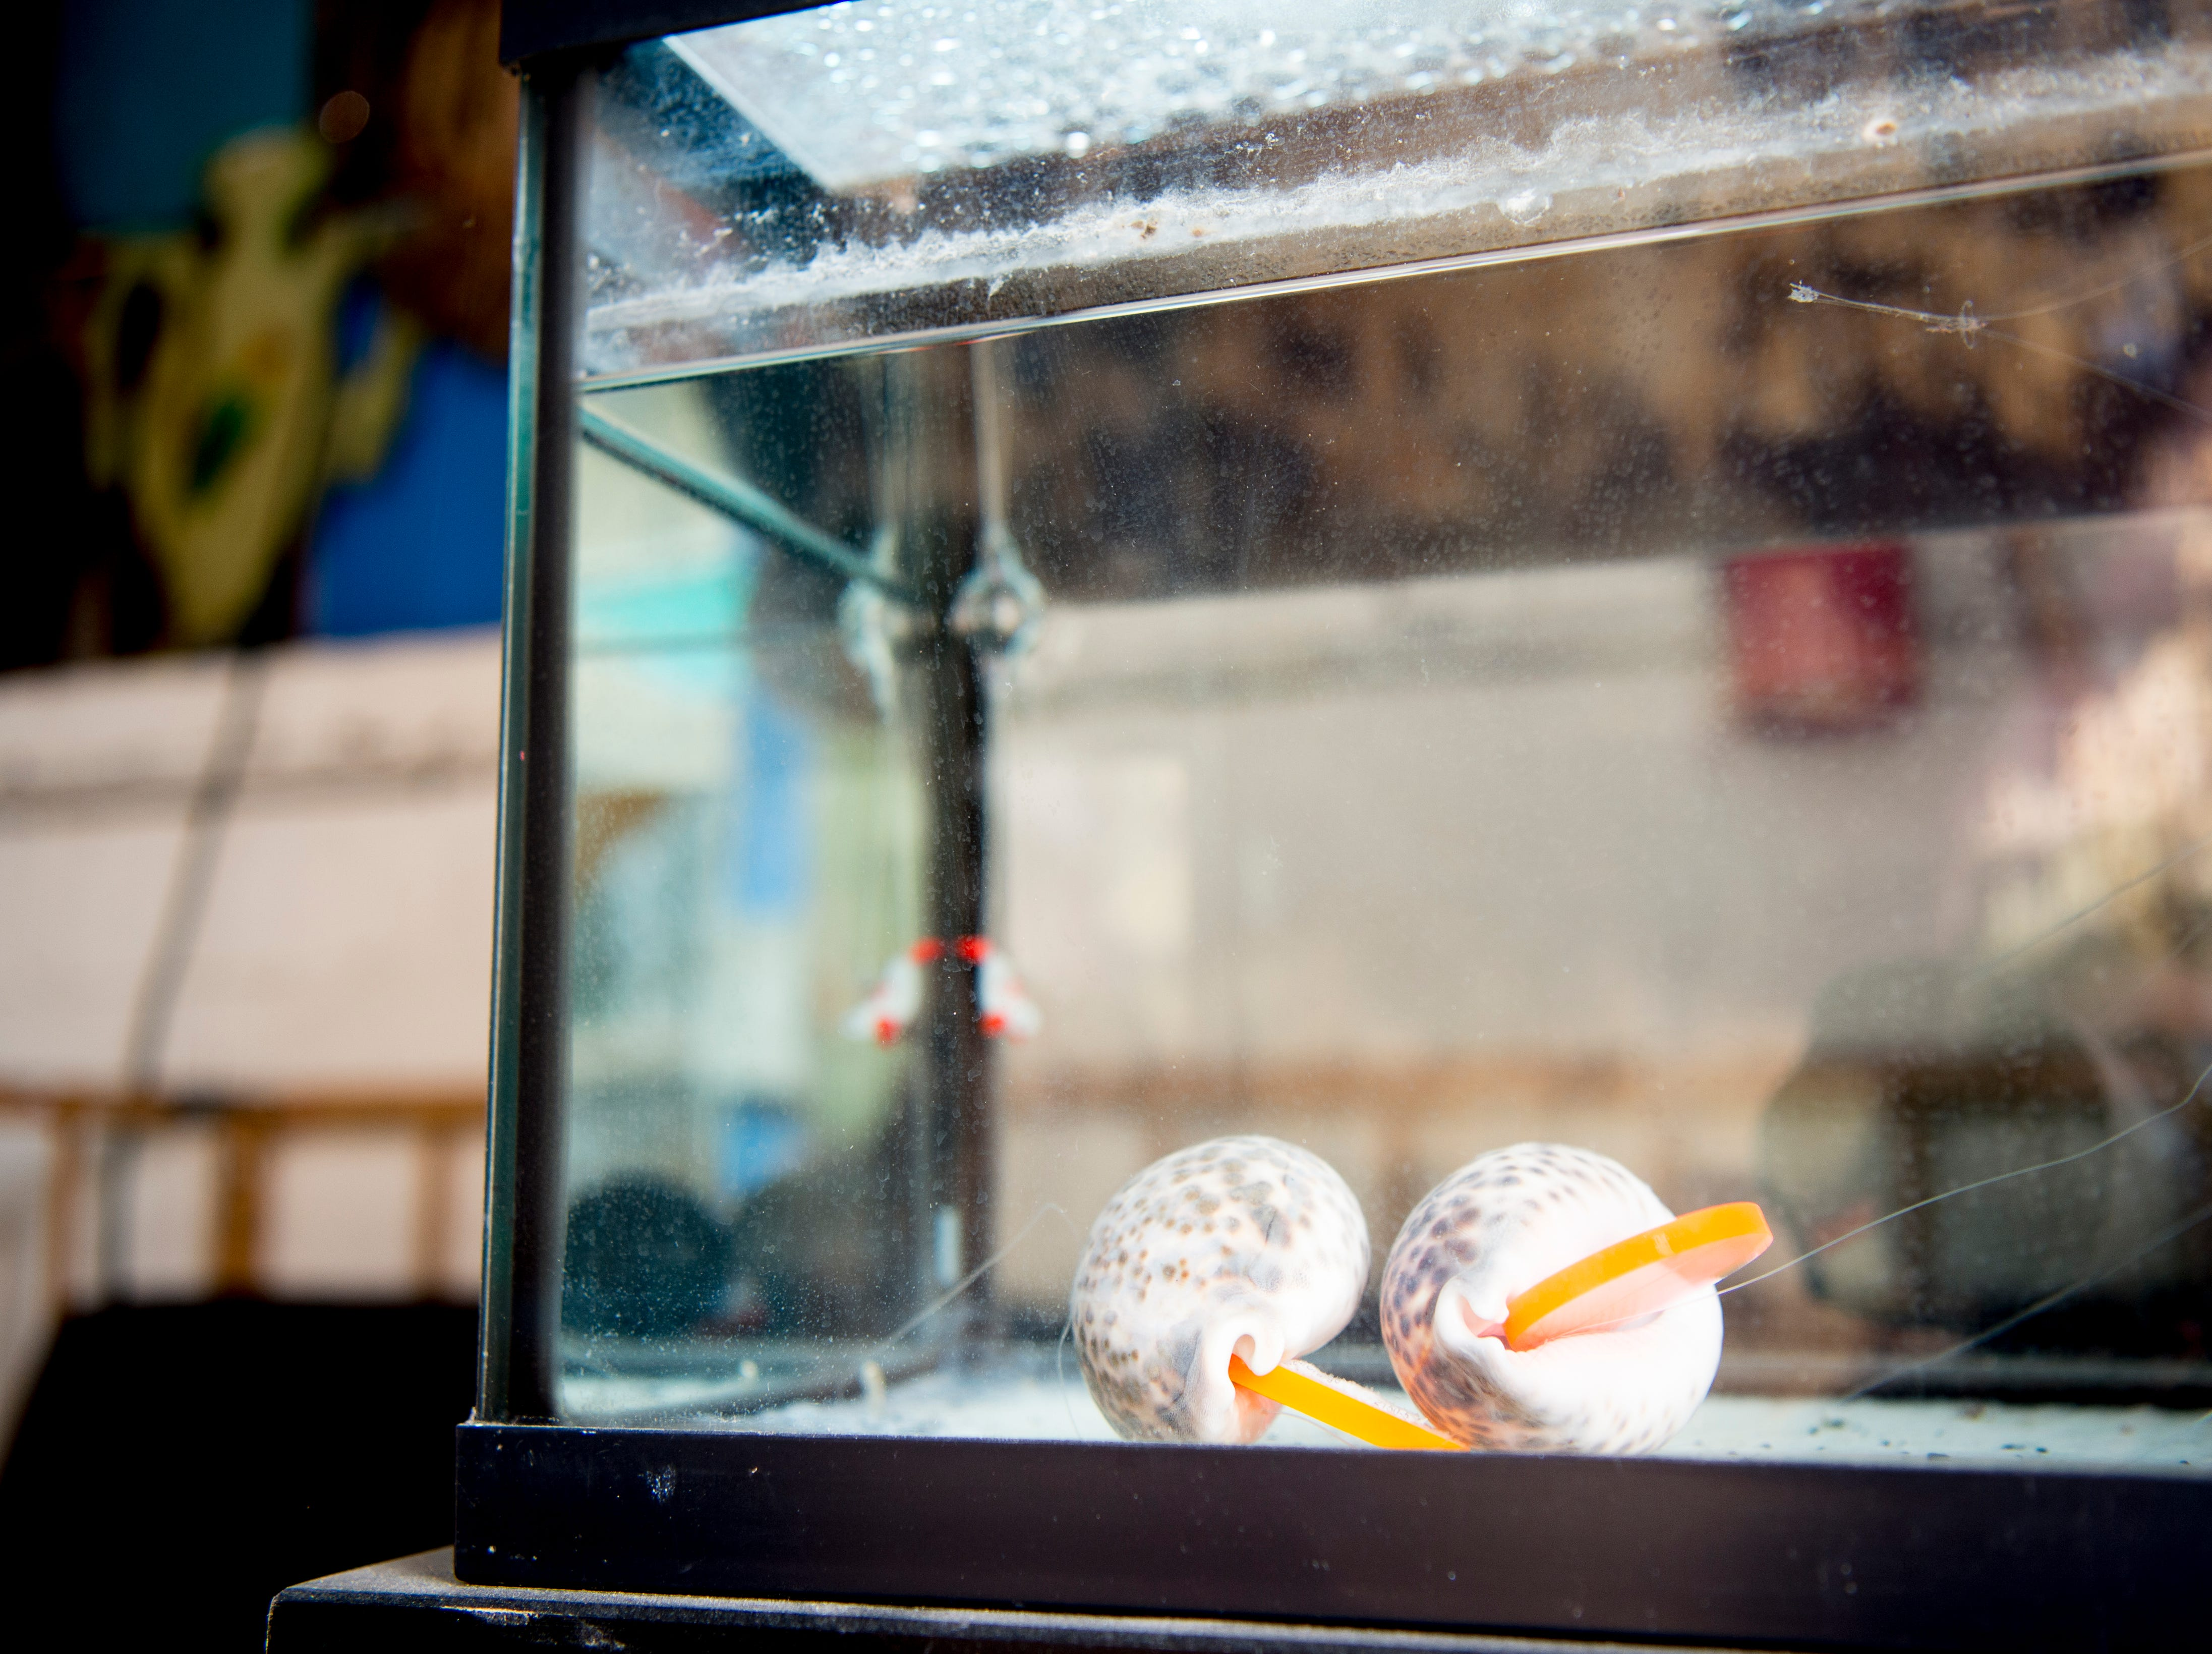 A fish tank stands beside the entrance at Bar Marley in Knoxville, Tennessee on Thursday, February 14, 2019. The Caribbean-themed Bar Marley is facing possible acquisition and condemnation by KCDC due to code violations.